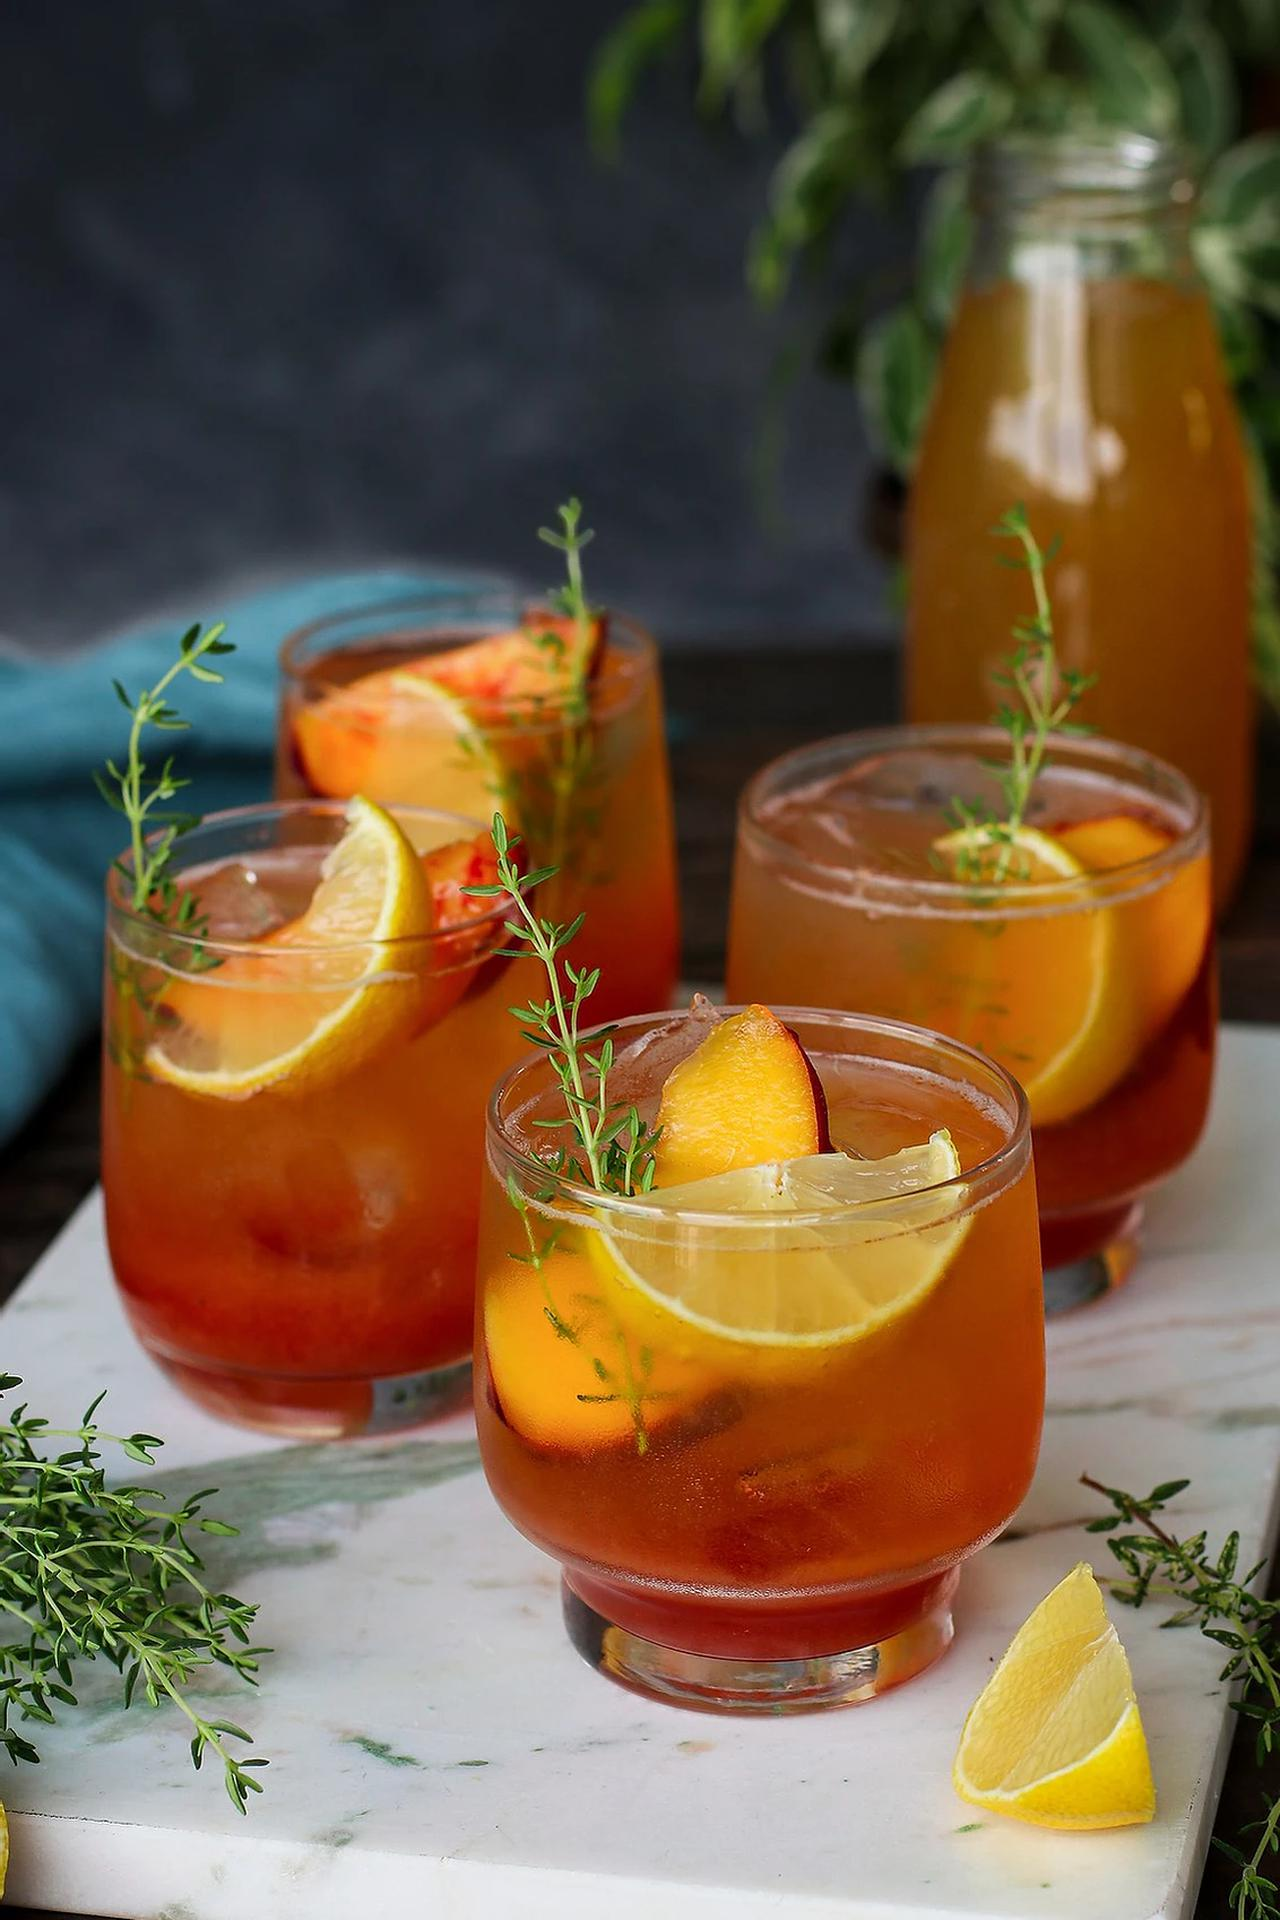 Main image of Peach Thyme Iced Tea